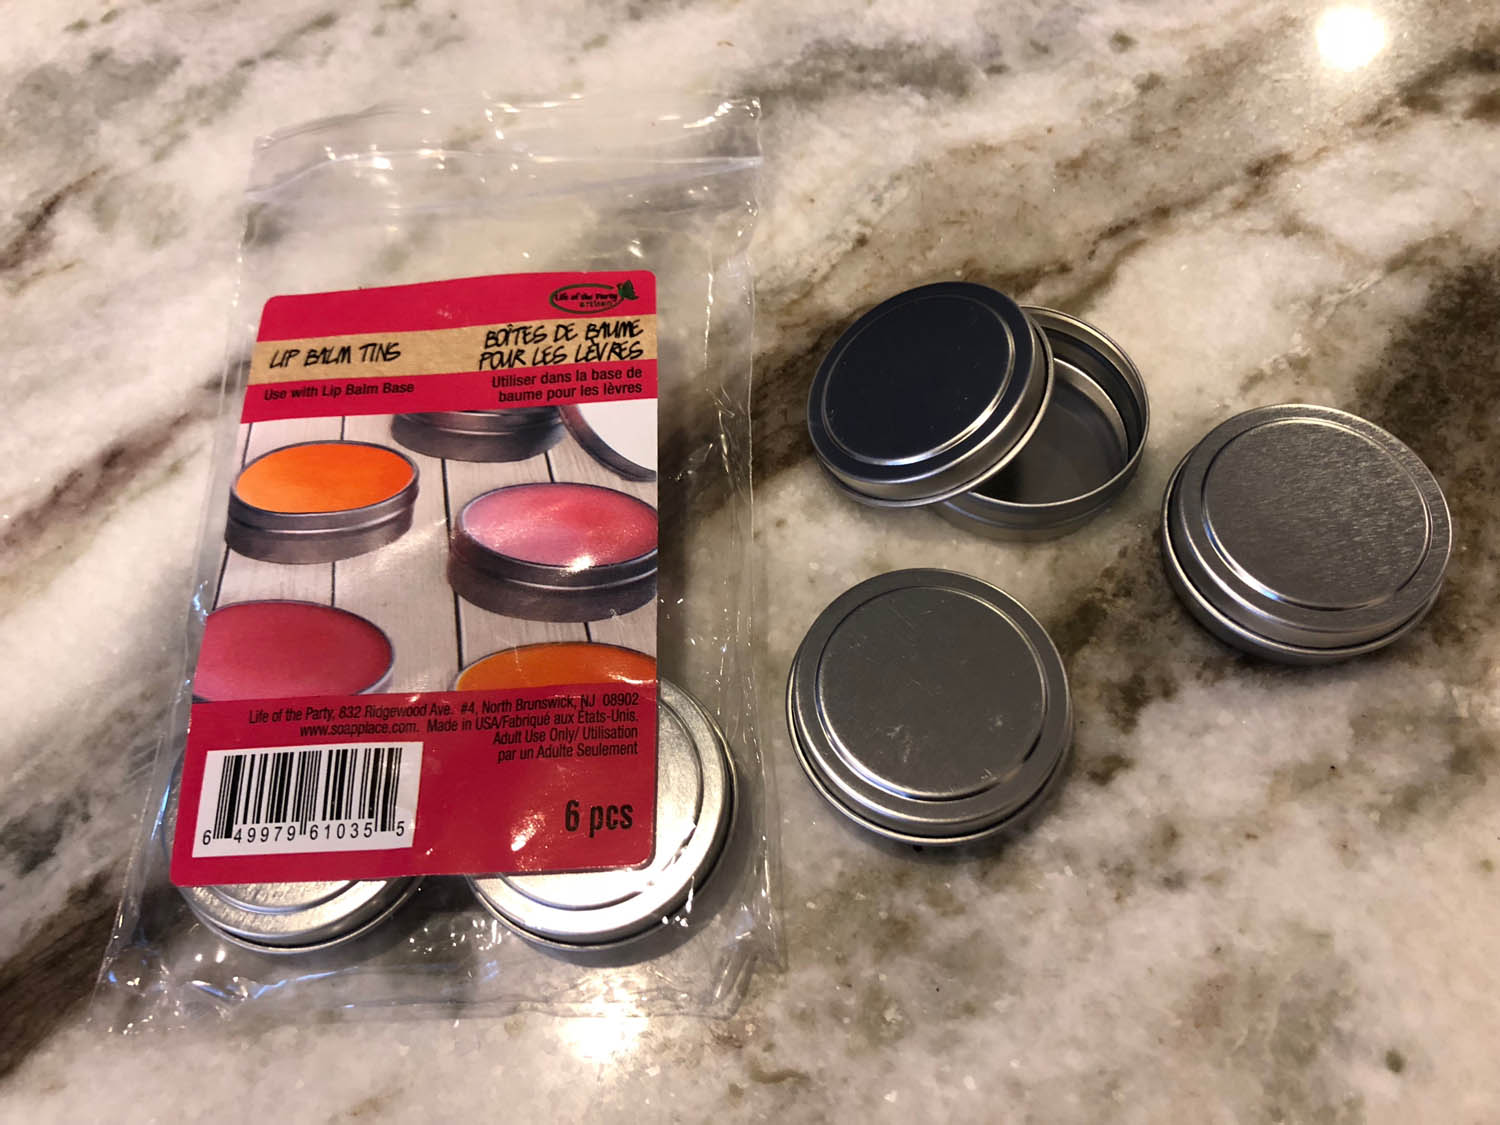 Tins for homemade lip balm from Life of the Party